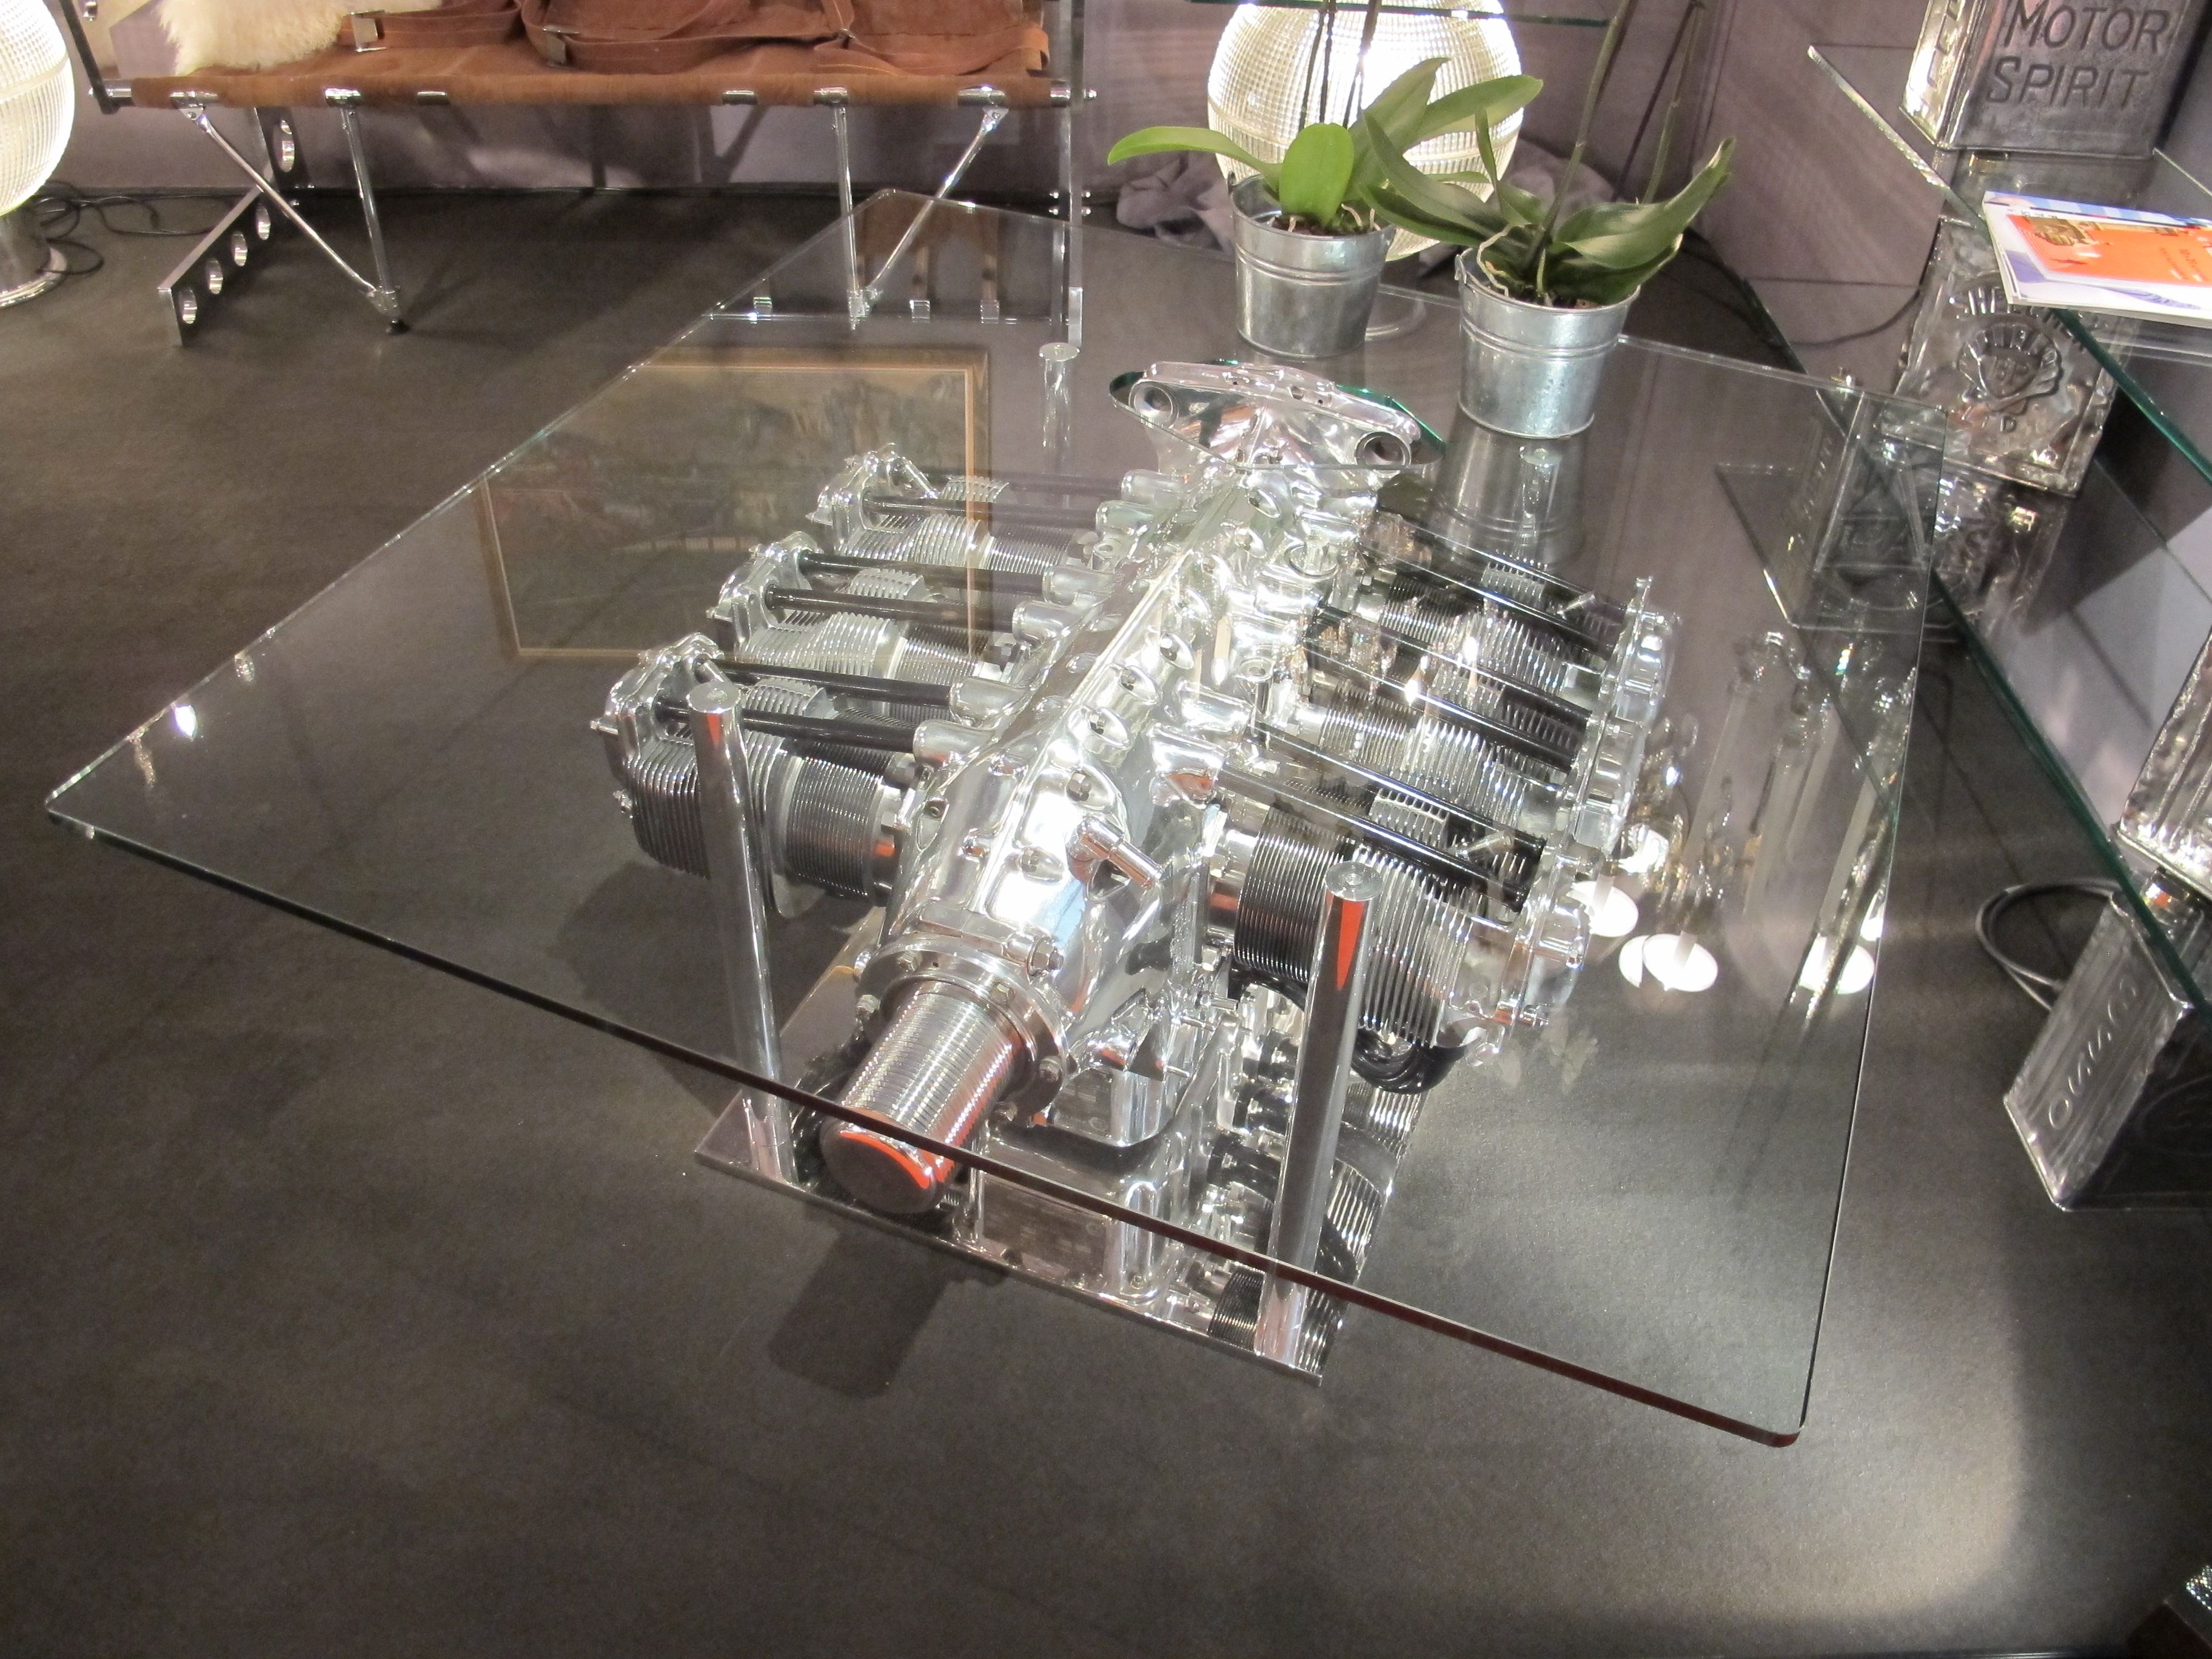 Table basse moteur avion moteur avion table moteur pinterest table basse table basse - Table basse moteur voiture ...